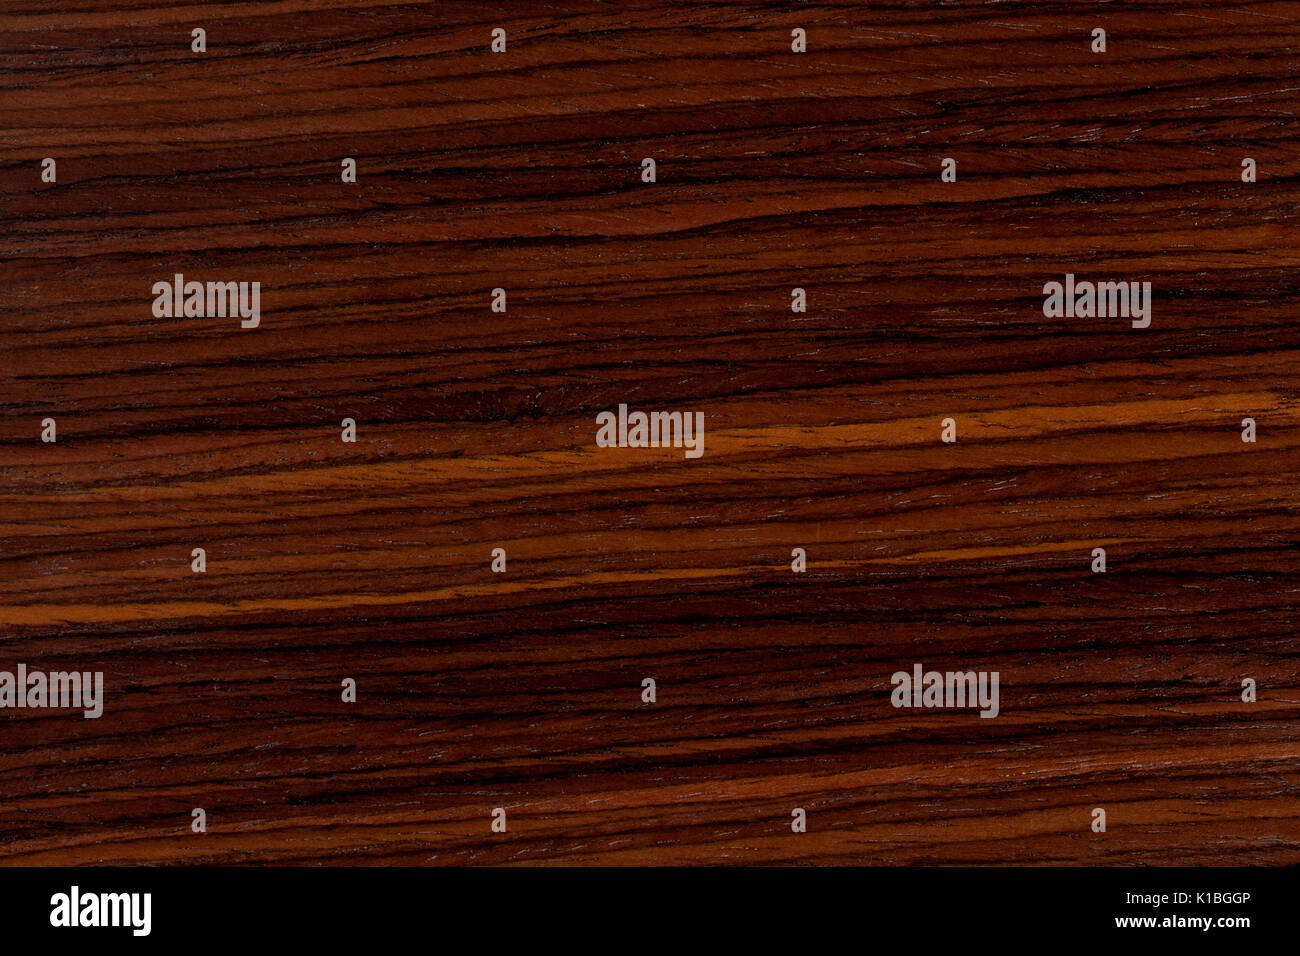 Wurzelholz Textur Texture Rosewood Wooden Background Stockfotos Texture Rosewood